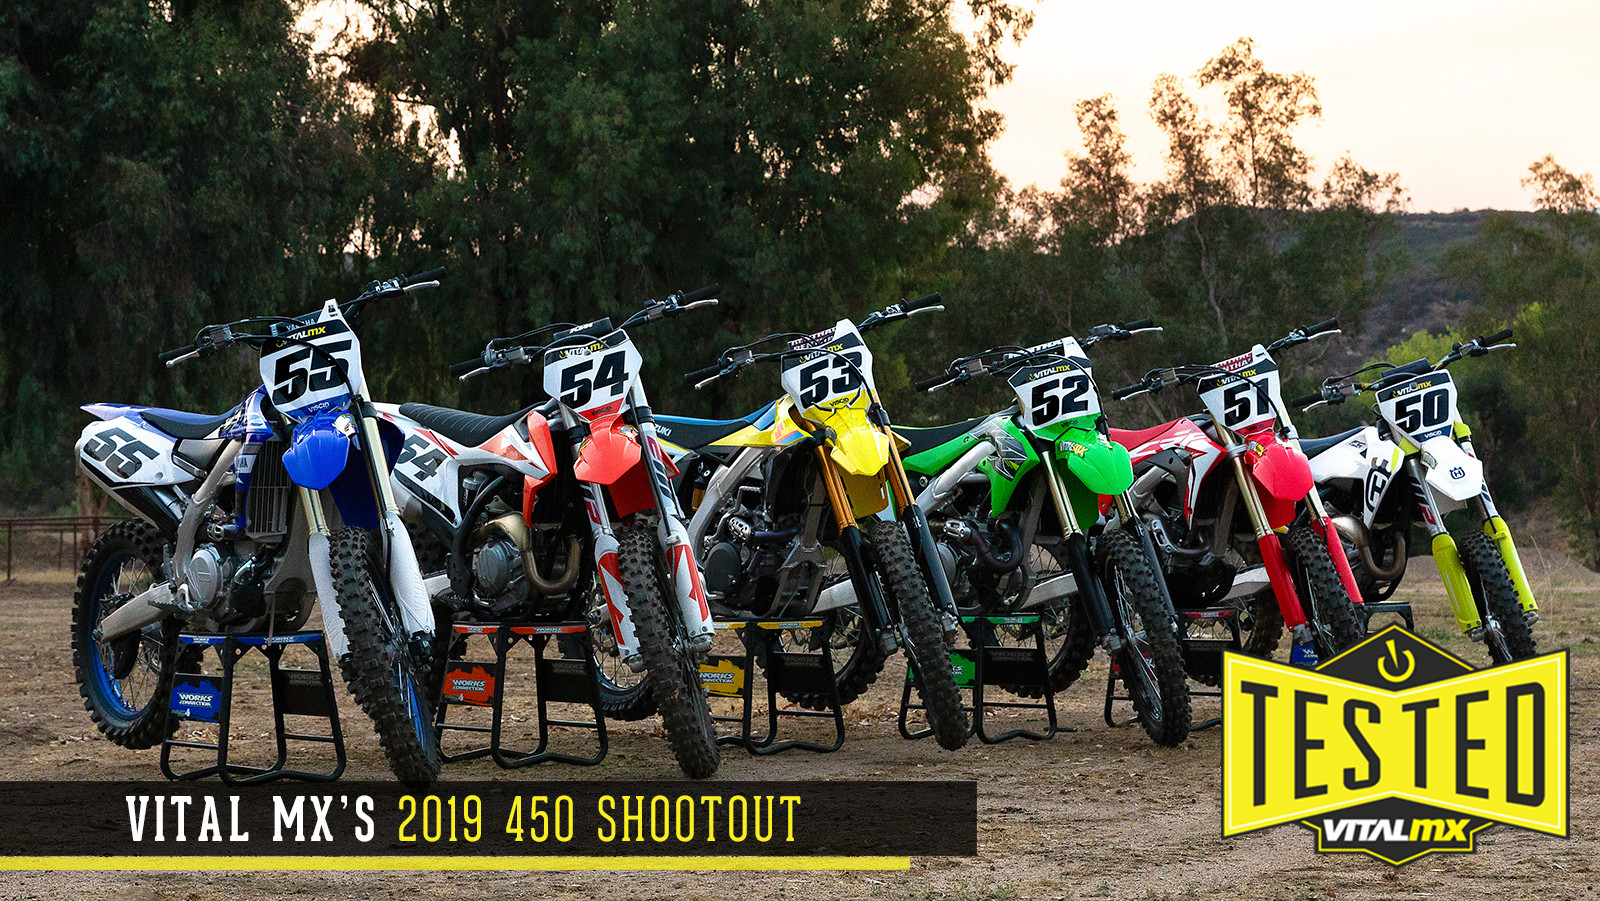 2019 Vital MX 450 Shootout - Motocross Feature Stories